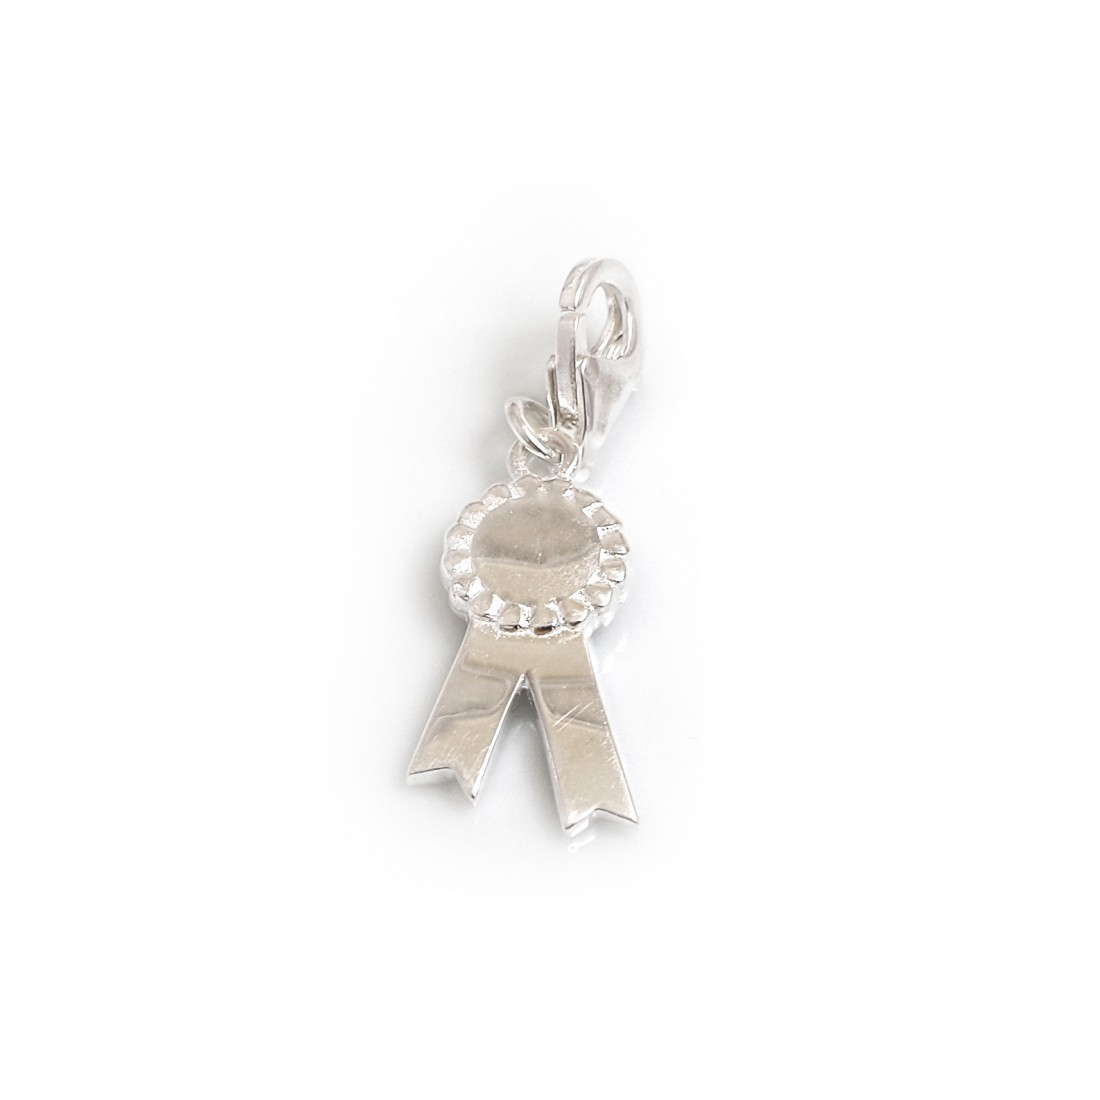 Exclusive Sterling Silver Thelwell Rosette Charm - Normal Thelwell Collection